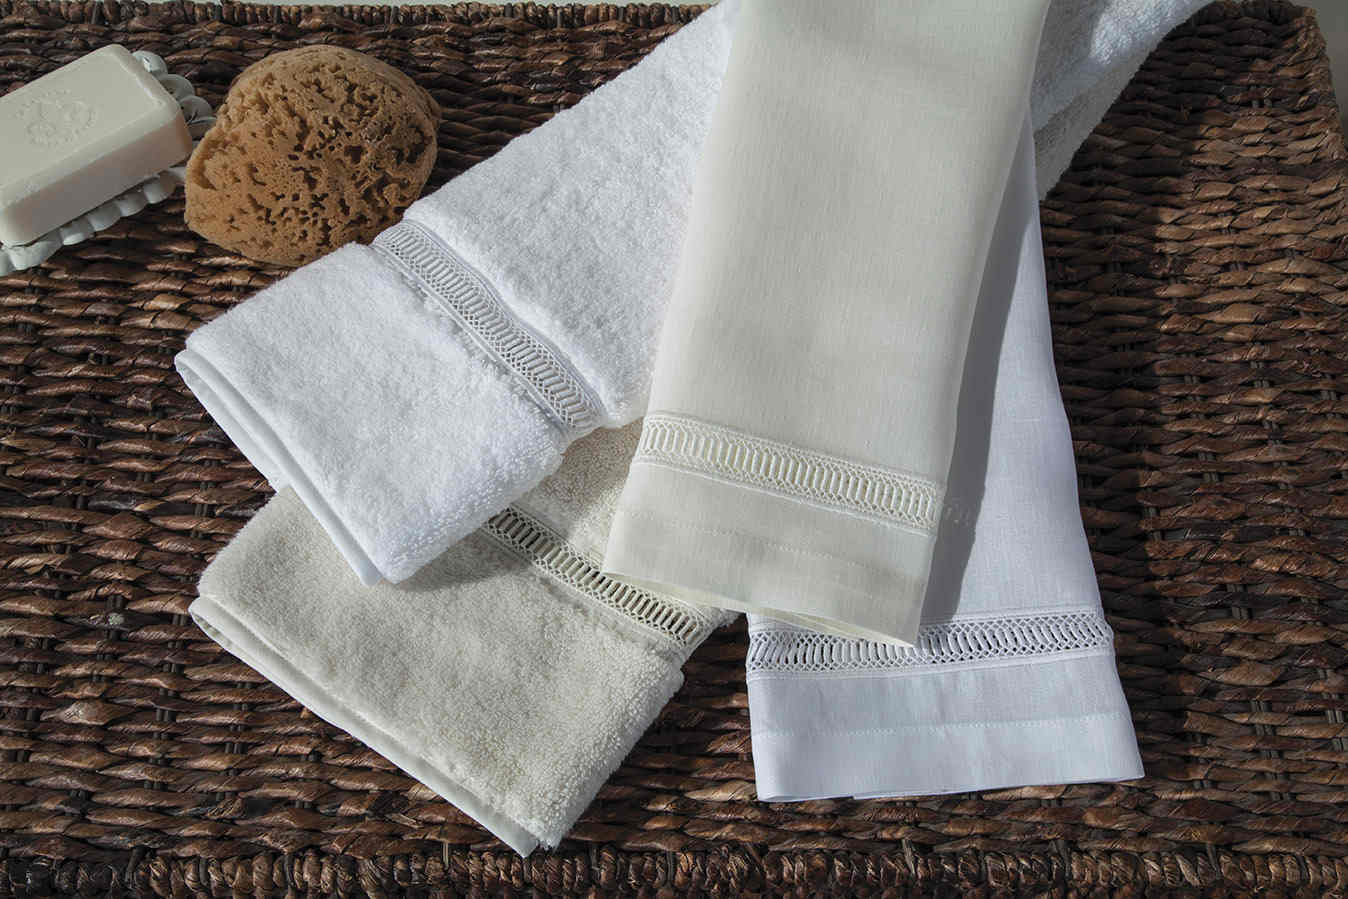 Guest towels are the perfect addition for your entertaining, whether at home or at a venue. They are most often used for brunches, luncheons, dinner celebrations, buffet meals, outdoor casual events like garden parties or BBQ events.